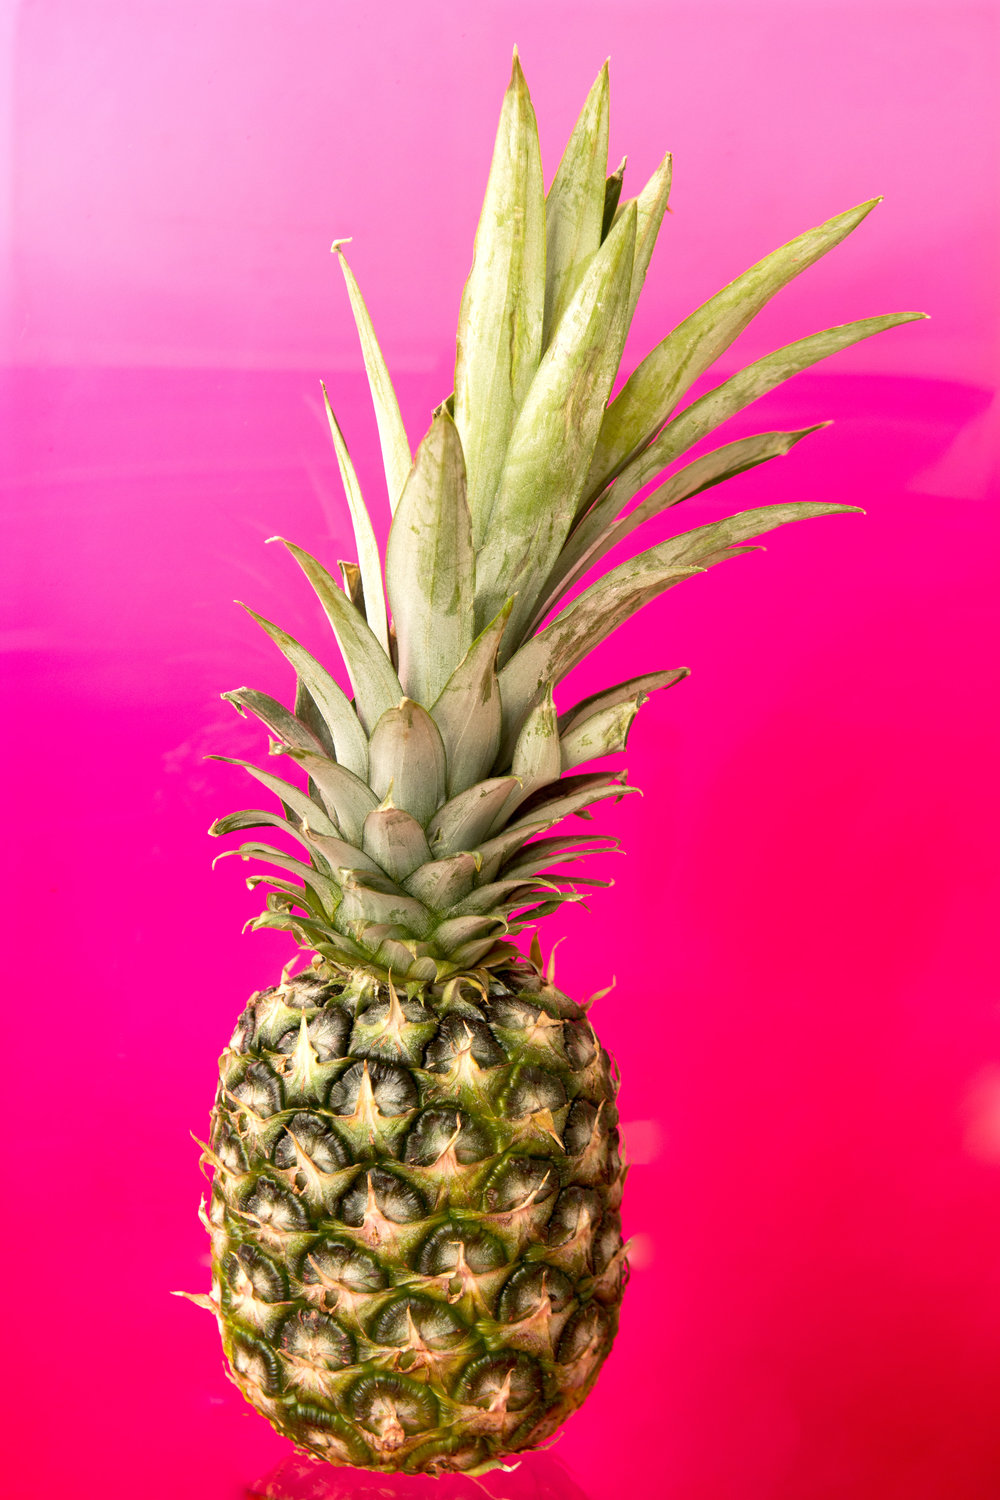 Pineapple isolated on bright neon pink background